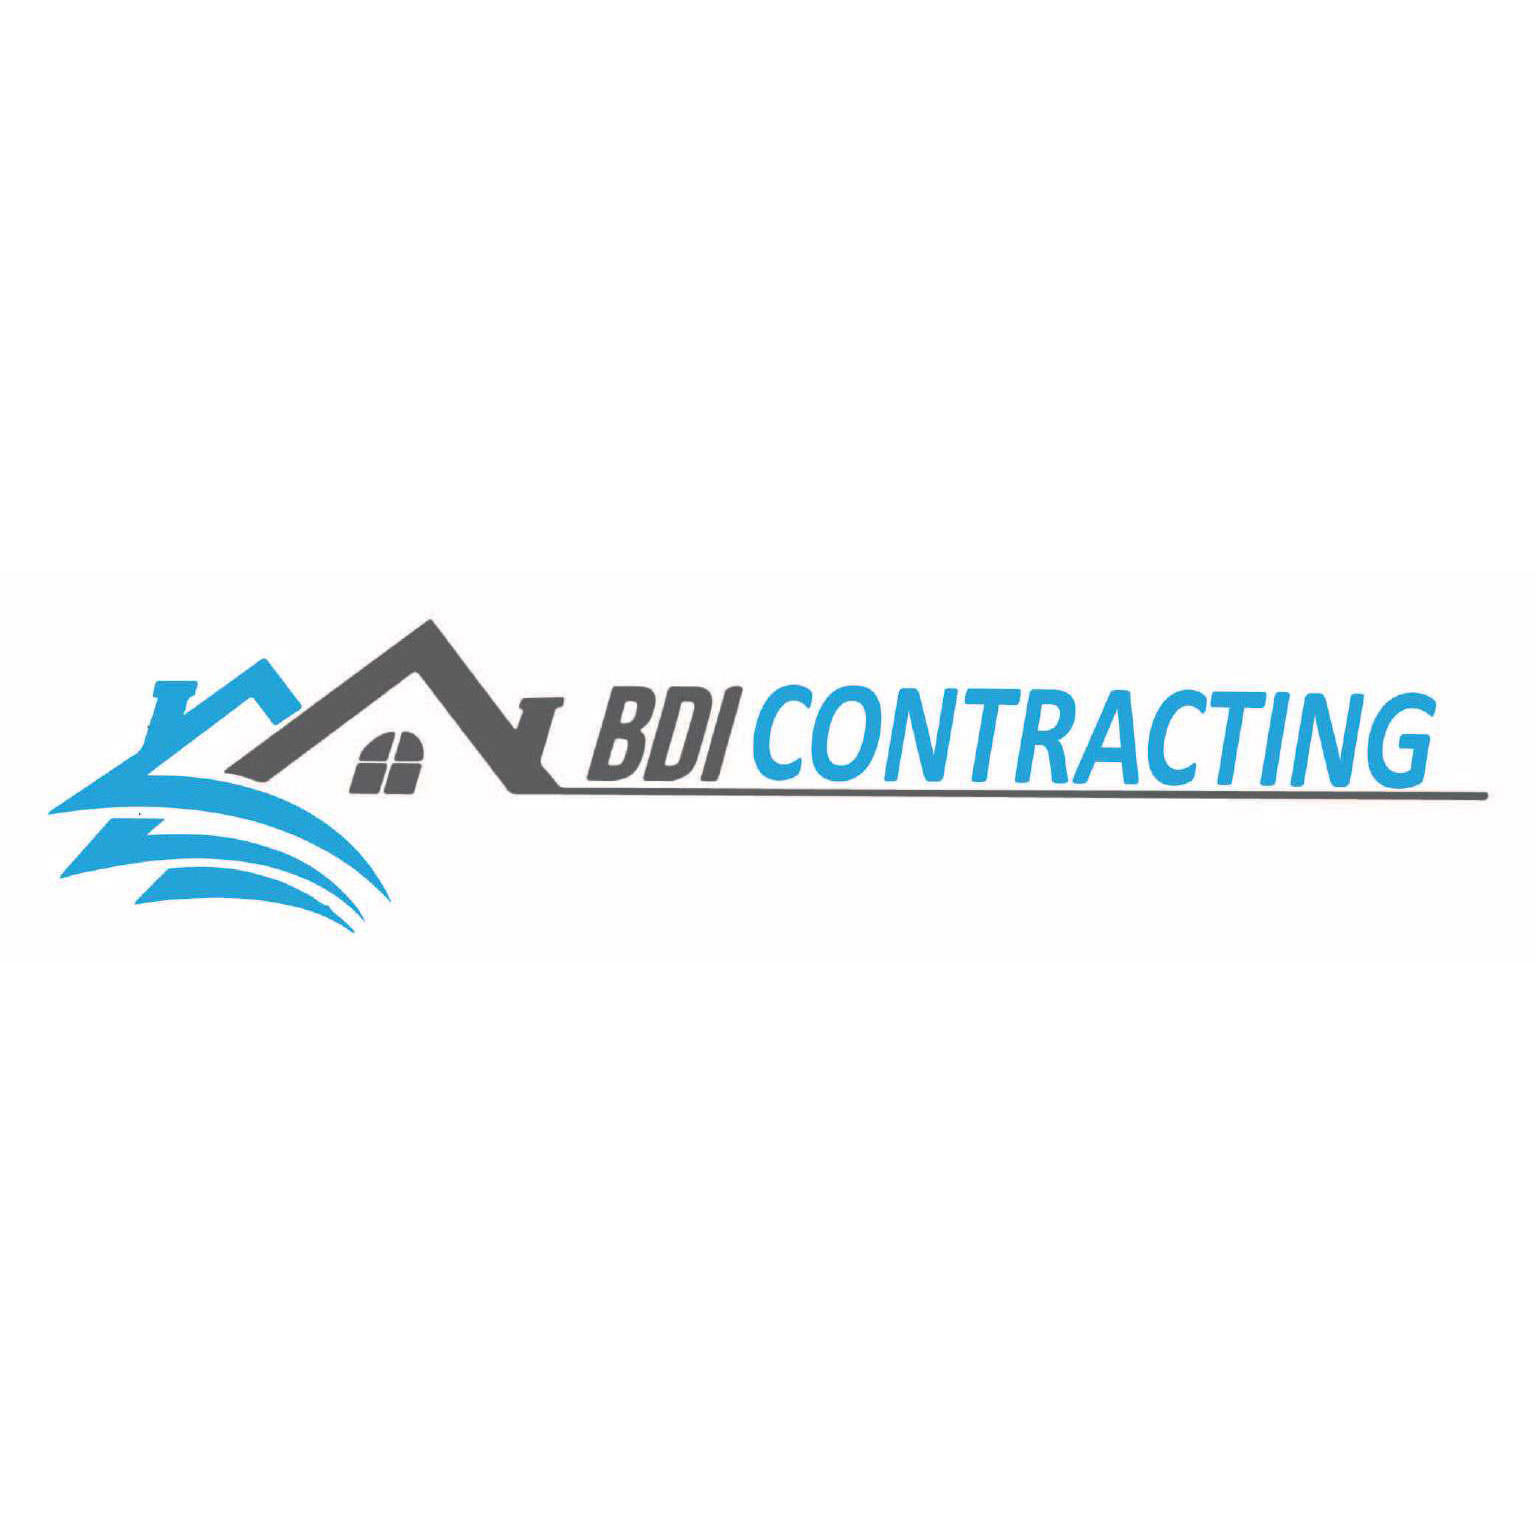 BDI Contracting